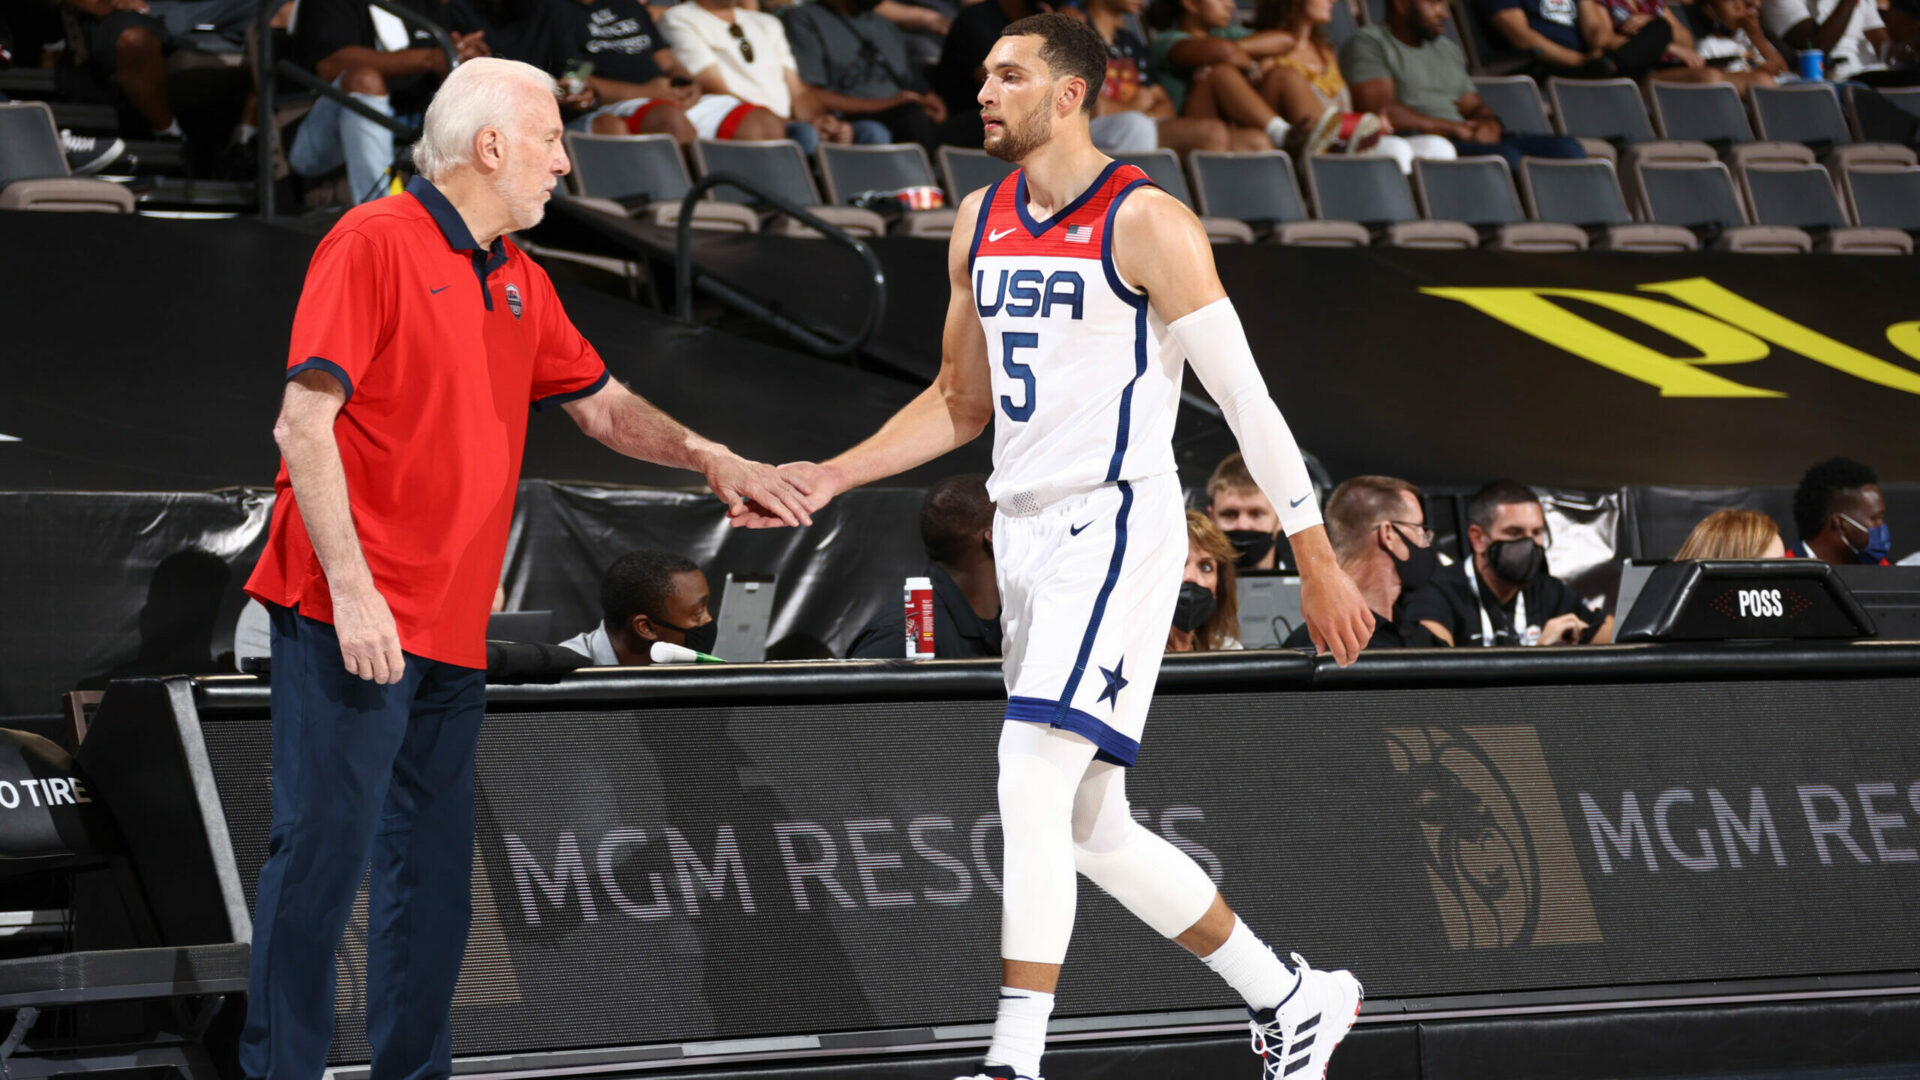 Zach LaVine clears health and safety protocols, will join Team USA in Tokyo